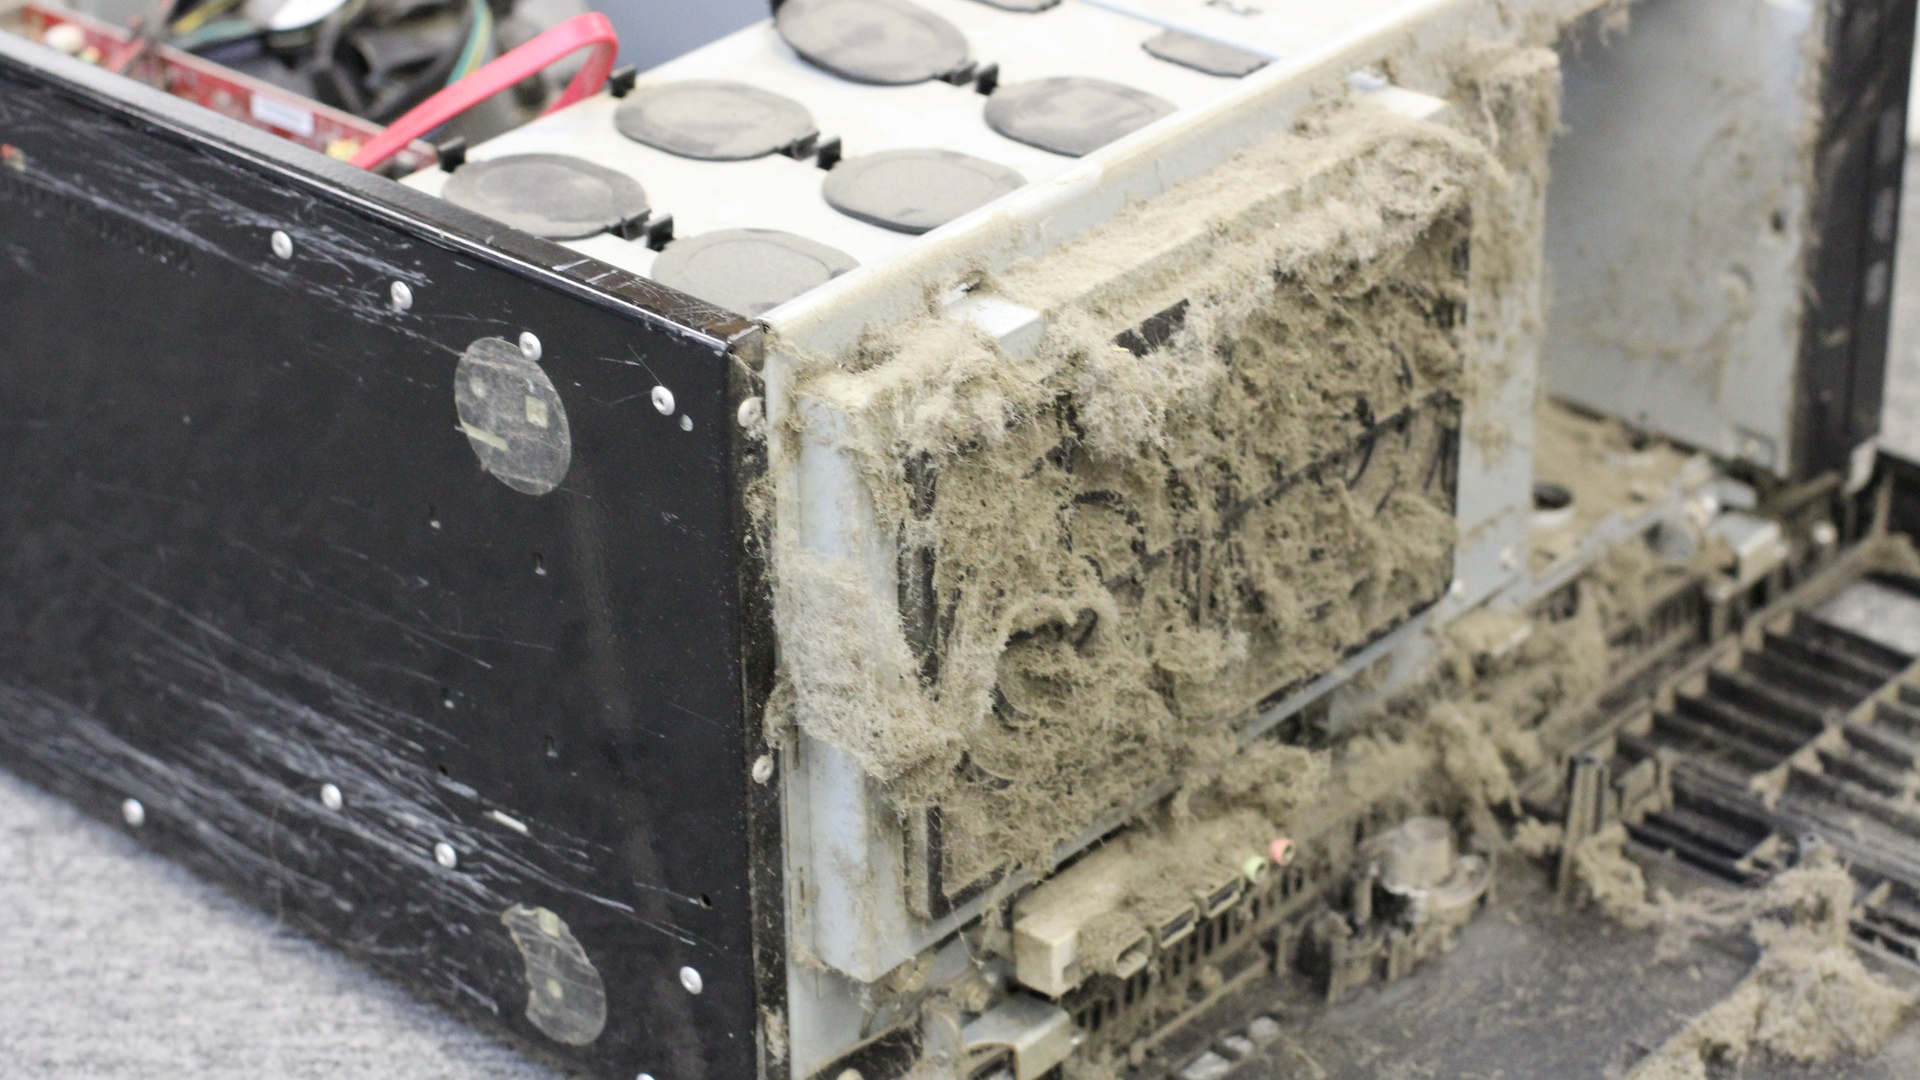 Dusty Computer